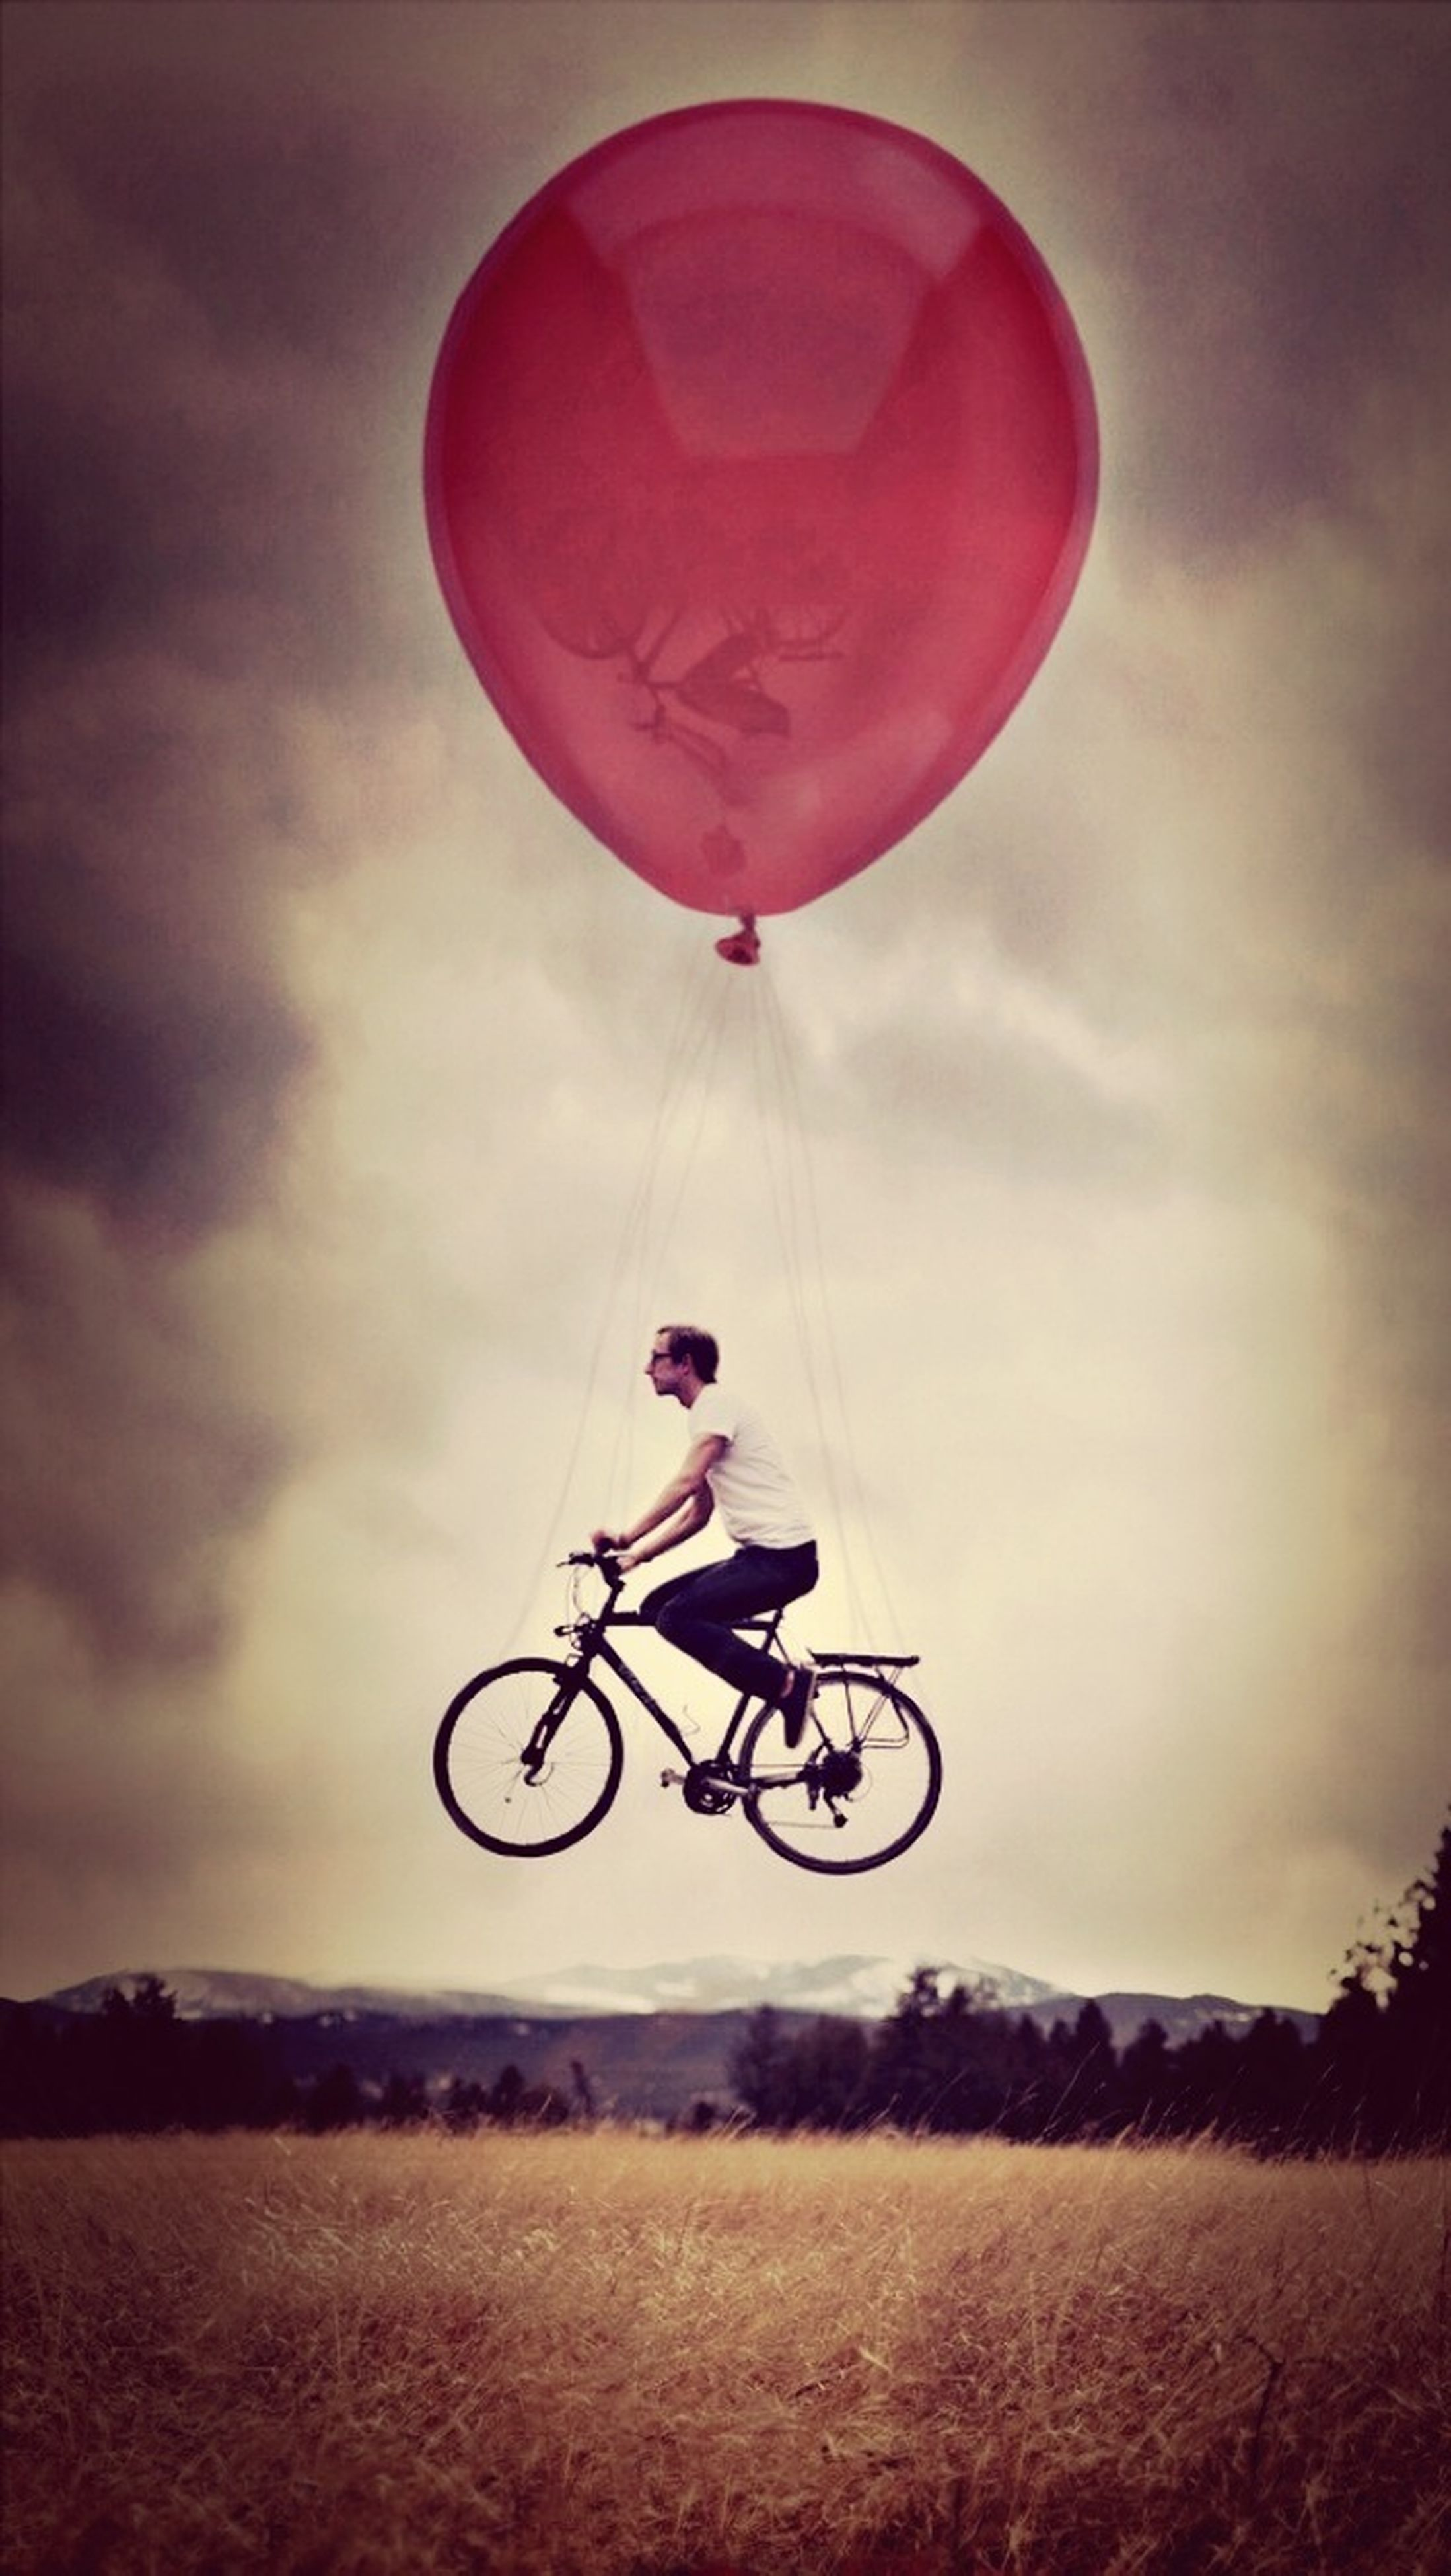 transportation, bicycle, sky, leisure activity, lifestyles, mode of transport, land vehicle, sport, cloud - sky, mid-air, riding, extreme sports, men, full length, adventure, cycling, parachute